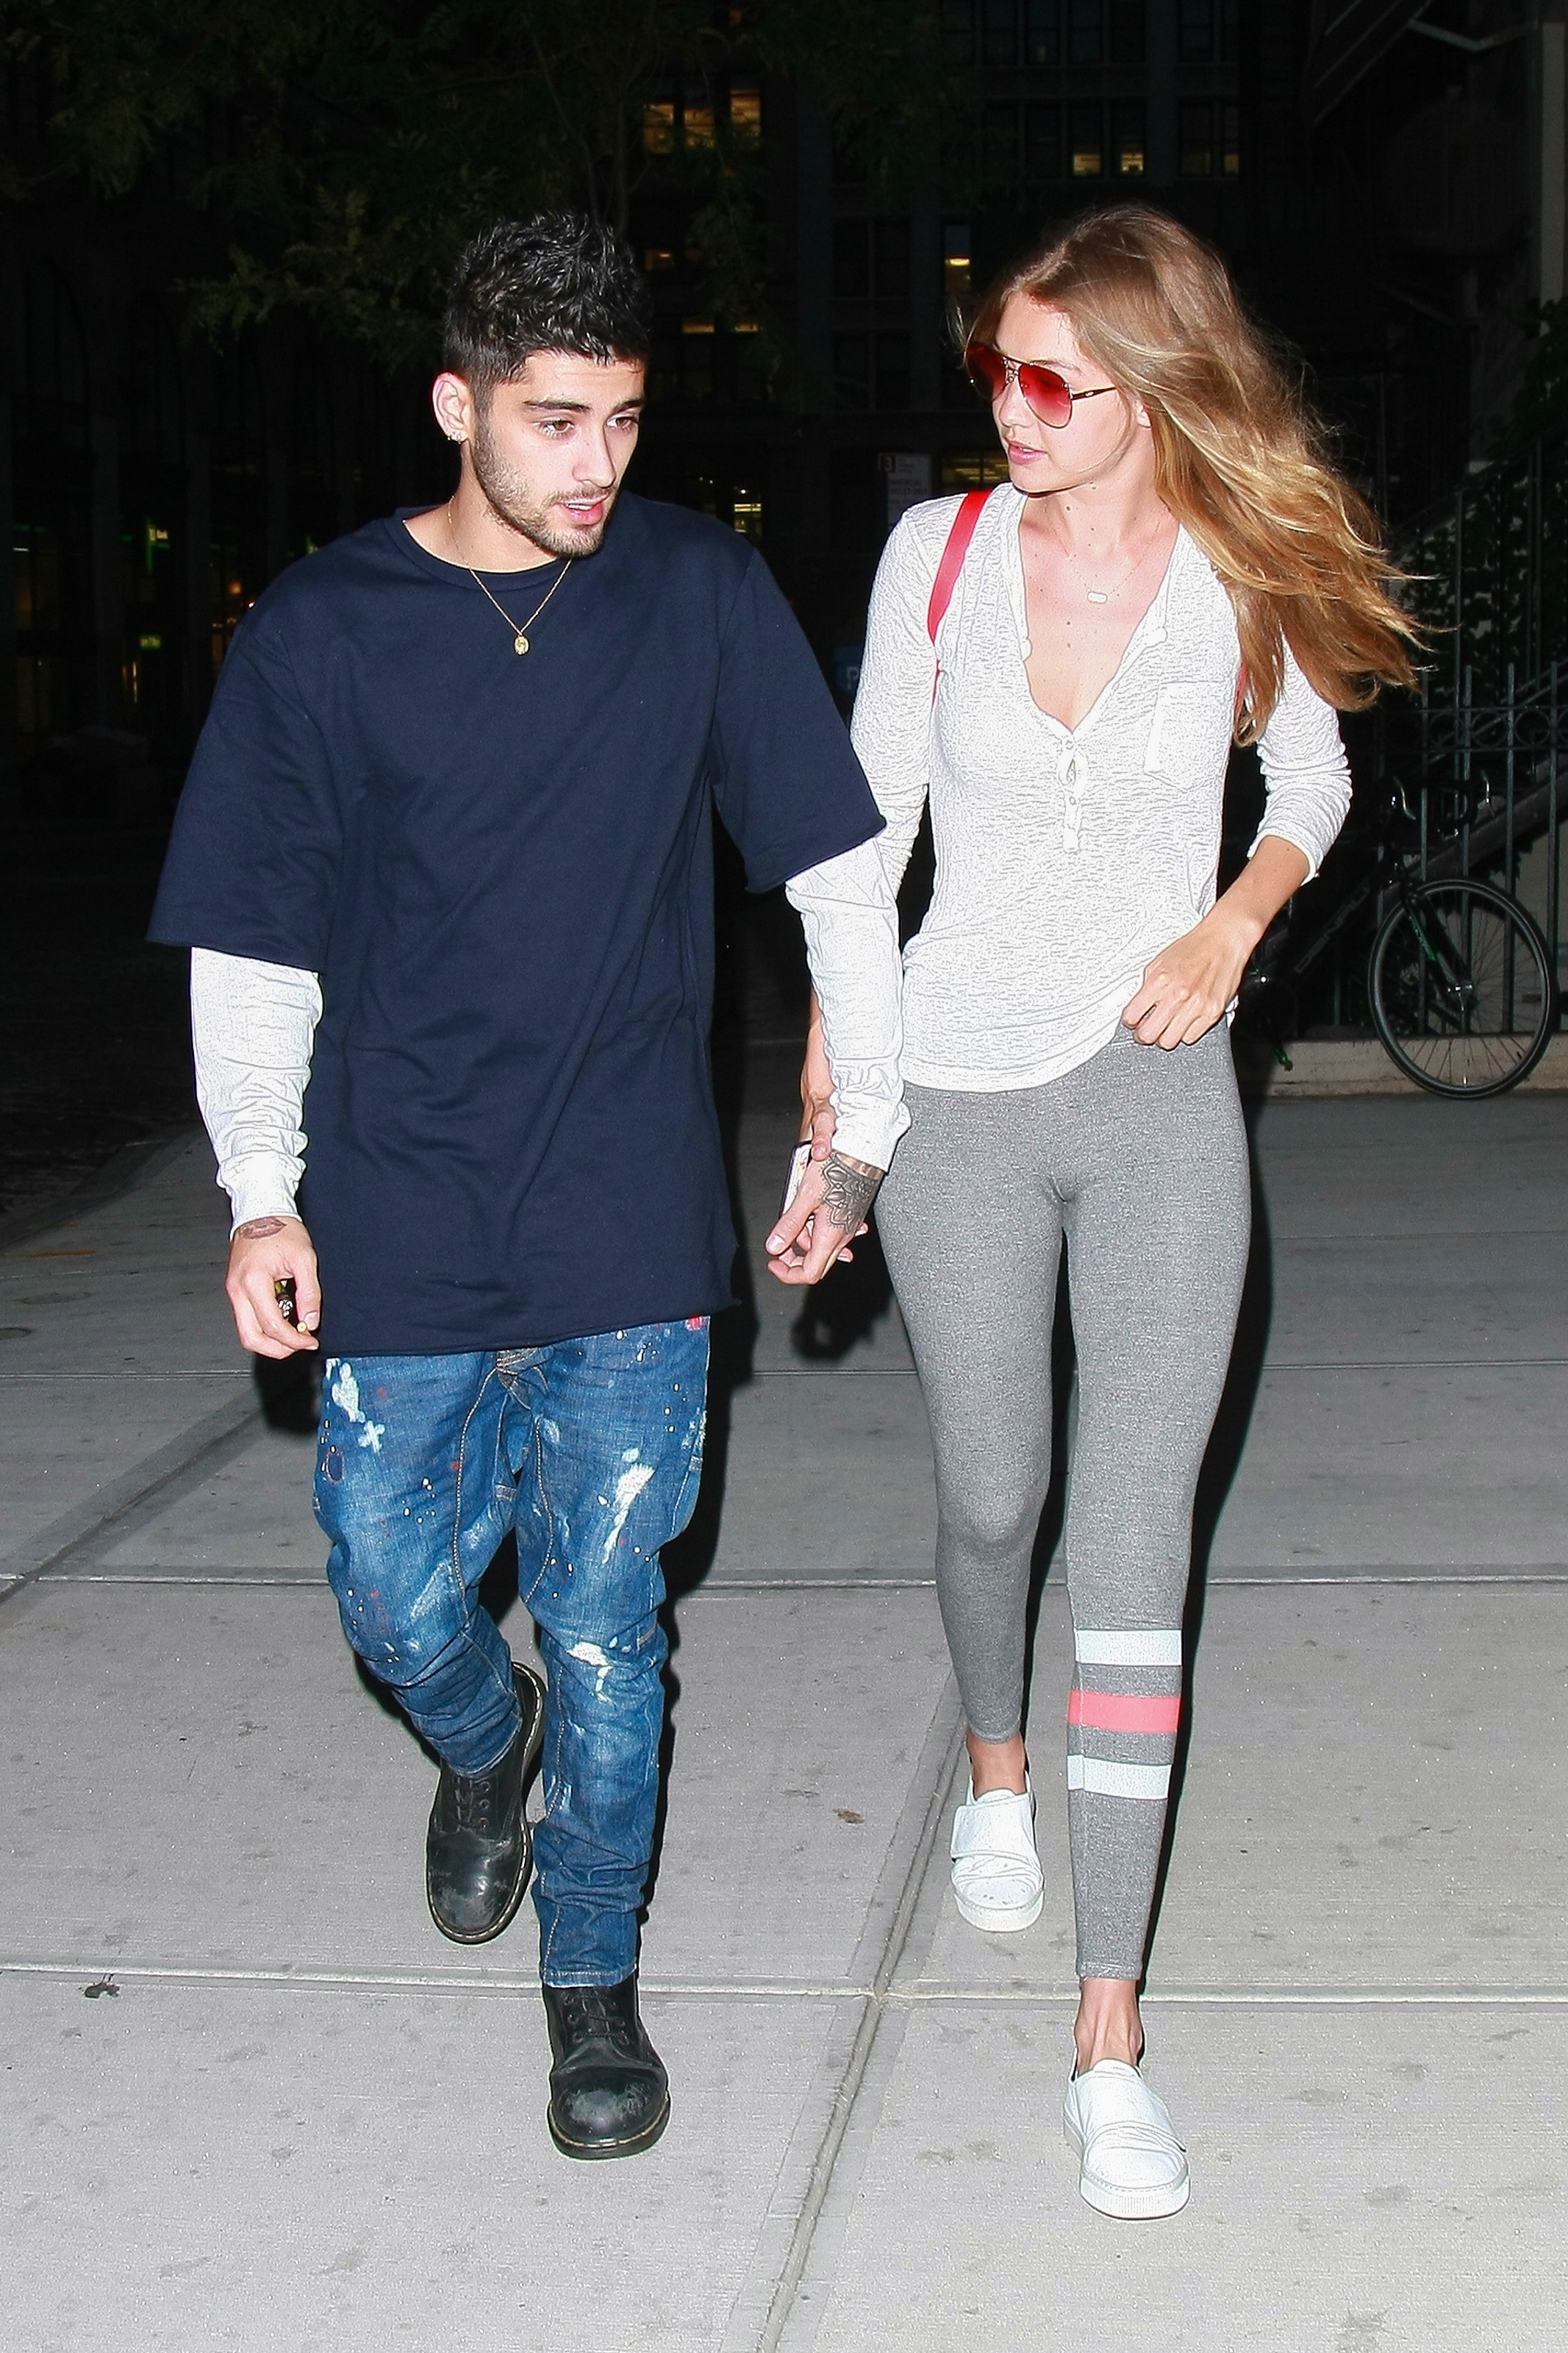 Gigi Hadid, Zayn Malik move in together: report